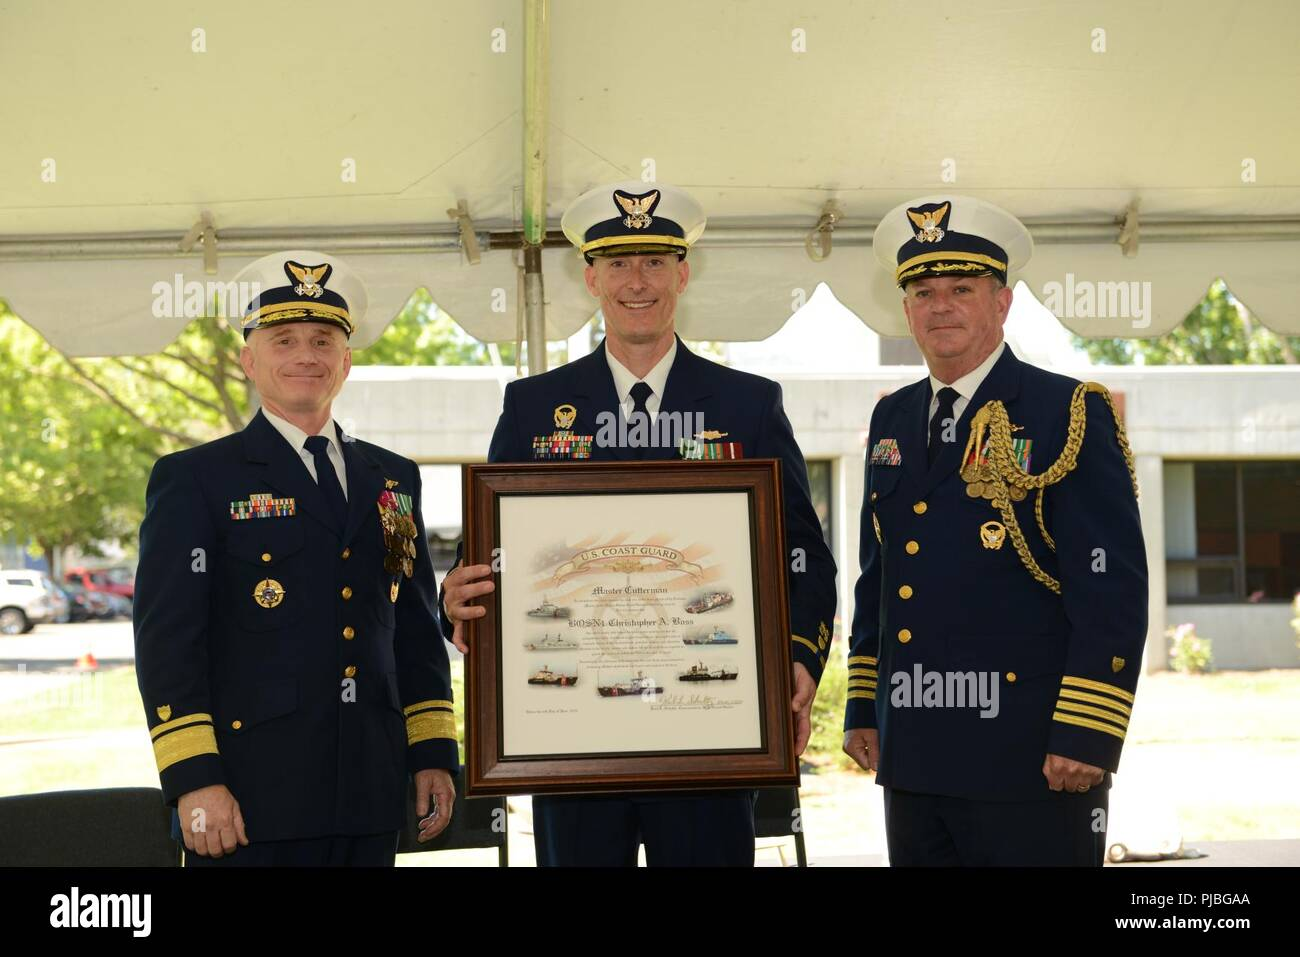 Rear Adm. David Throop, commander Coast Guard 13th District and Capt. Brendan McPherson, chief of staff Coast Guard 13th District, presents a Master Cutterman certificate to Chief Warrant Officer Christopher Boss during a ceremony held at Marine Safety Unit Portland, Ore., July 12, 2018.    The Master Cutterman certificate is earned by serving an accumulative of 20 years  at sea serving aboard Coast Guard cutters.    U.S. Coast Guard - Stock Image